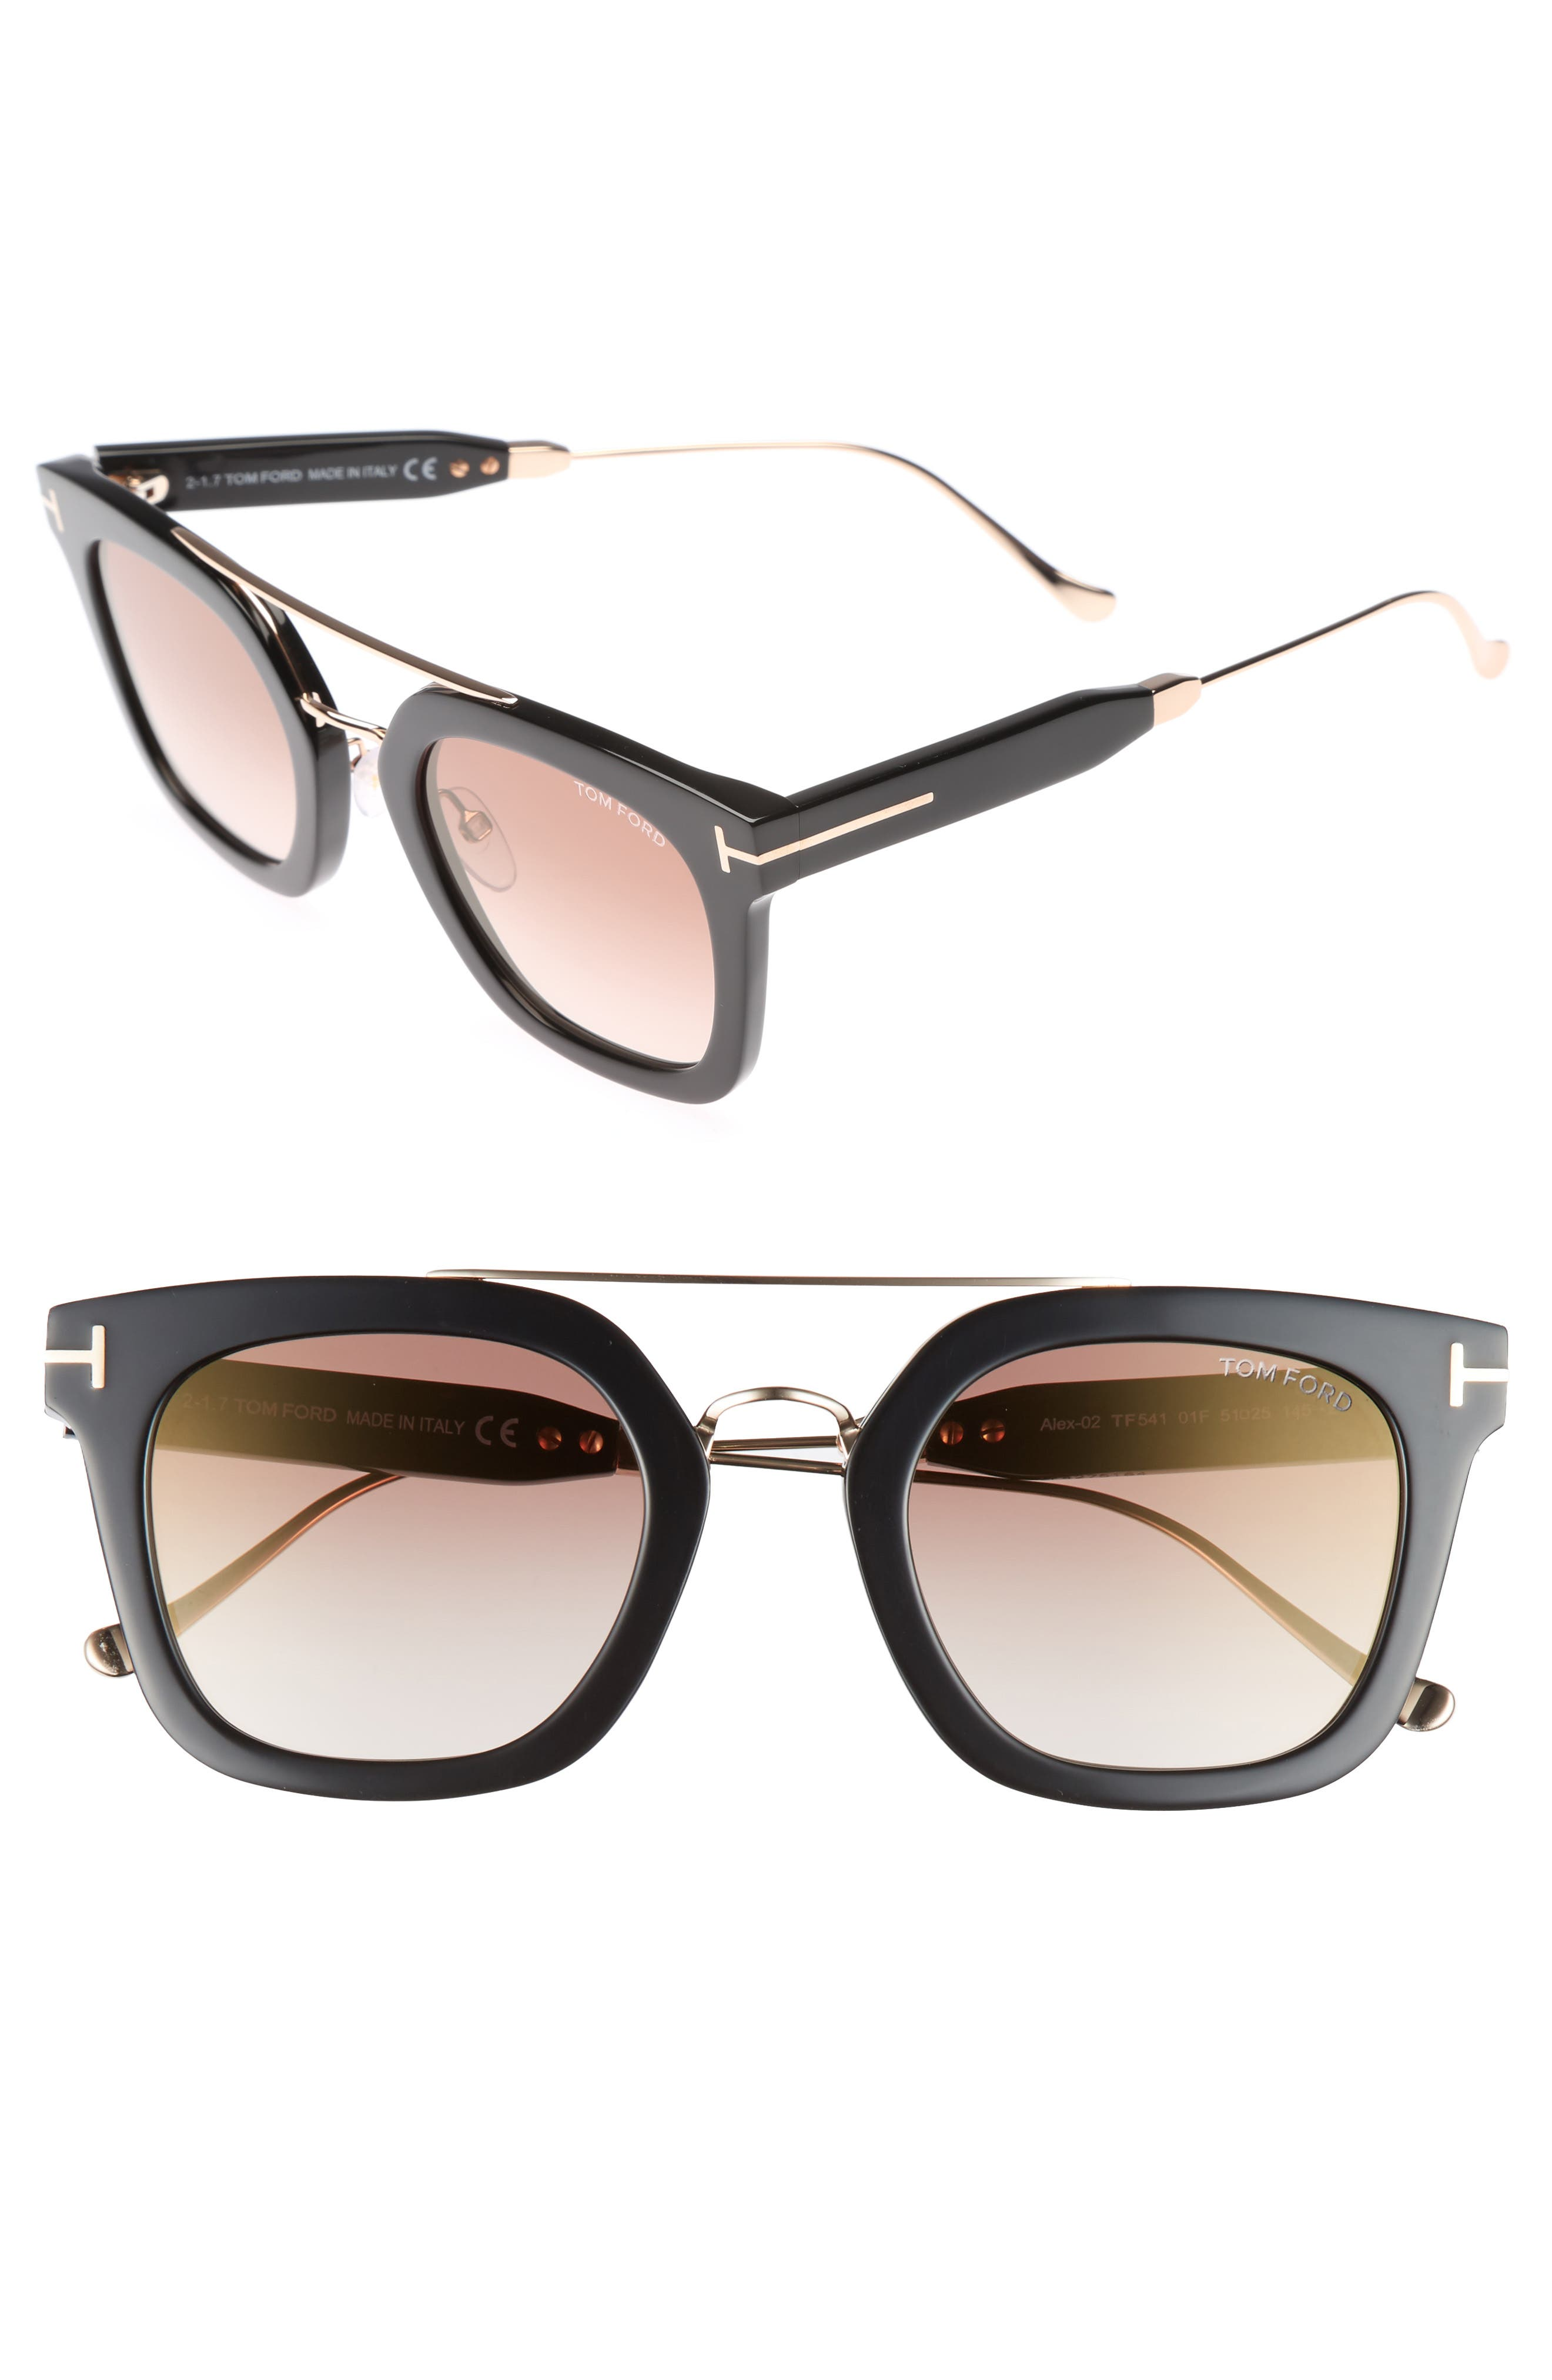 Main Image - Tom Ford Alex 51mm Sunglasses